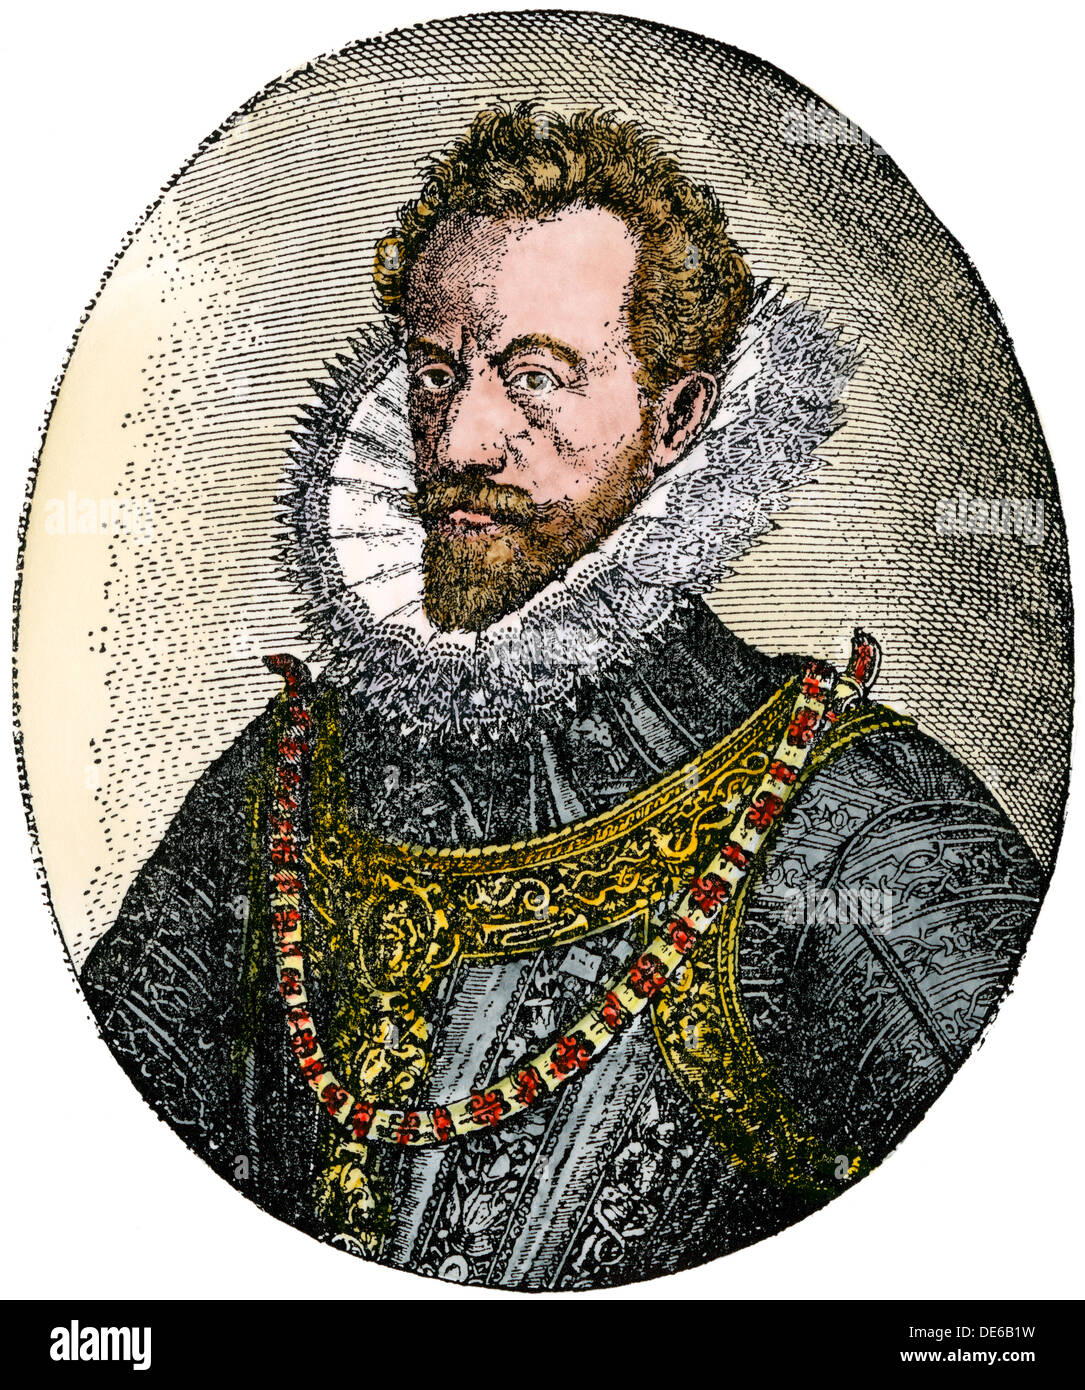 Alexander Farnese, Duke of Parma, Spanish governor-general of the Netherlands. Hand-colored woodcut - Stock Image